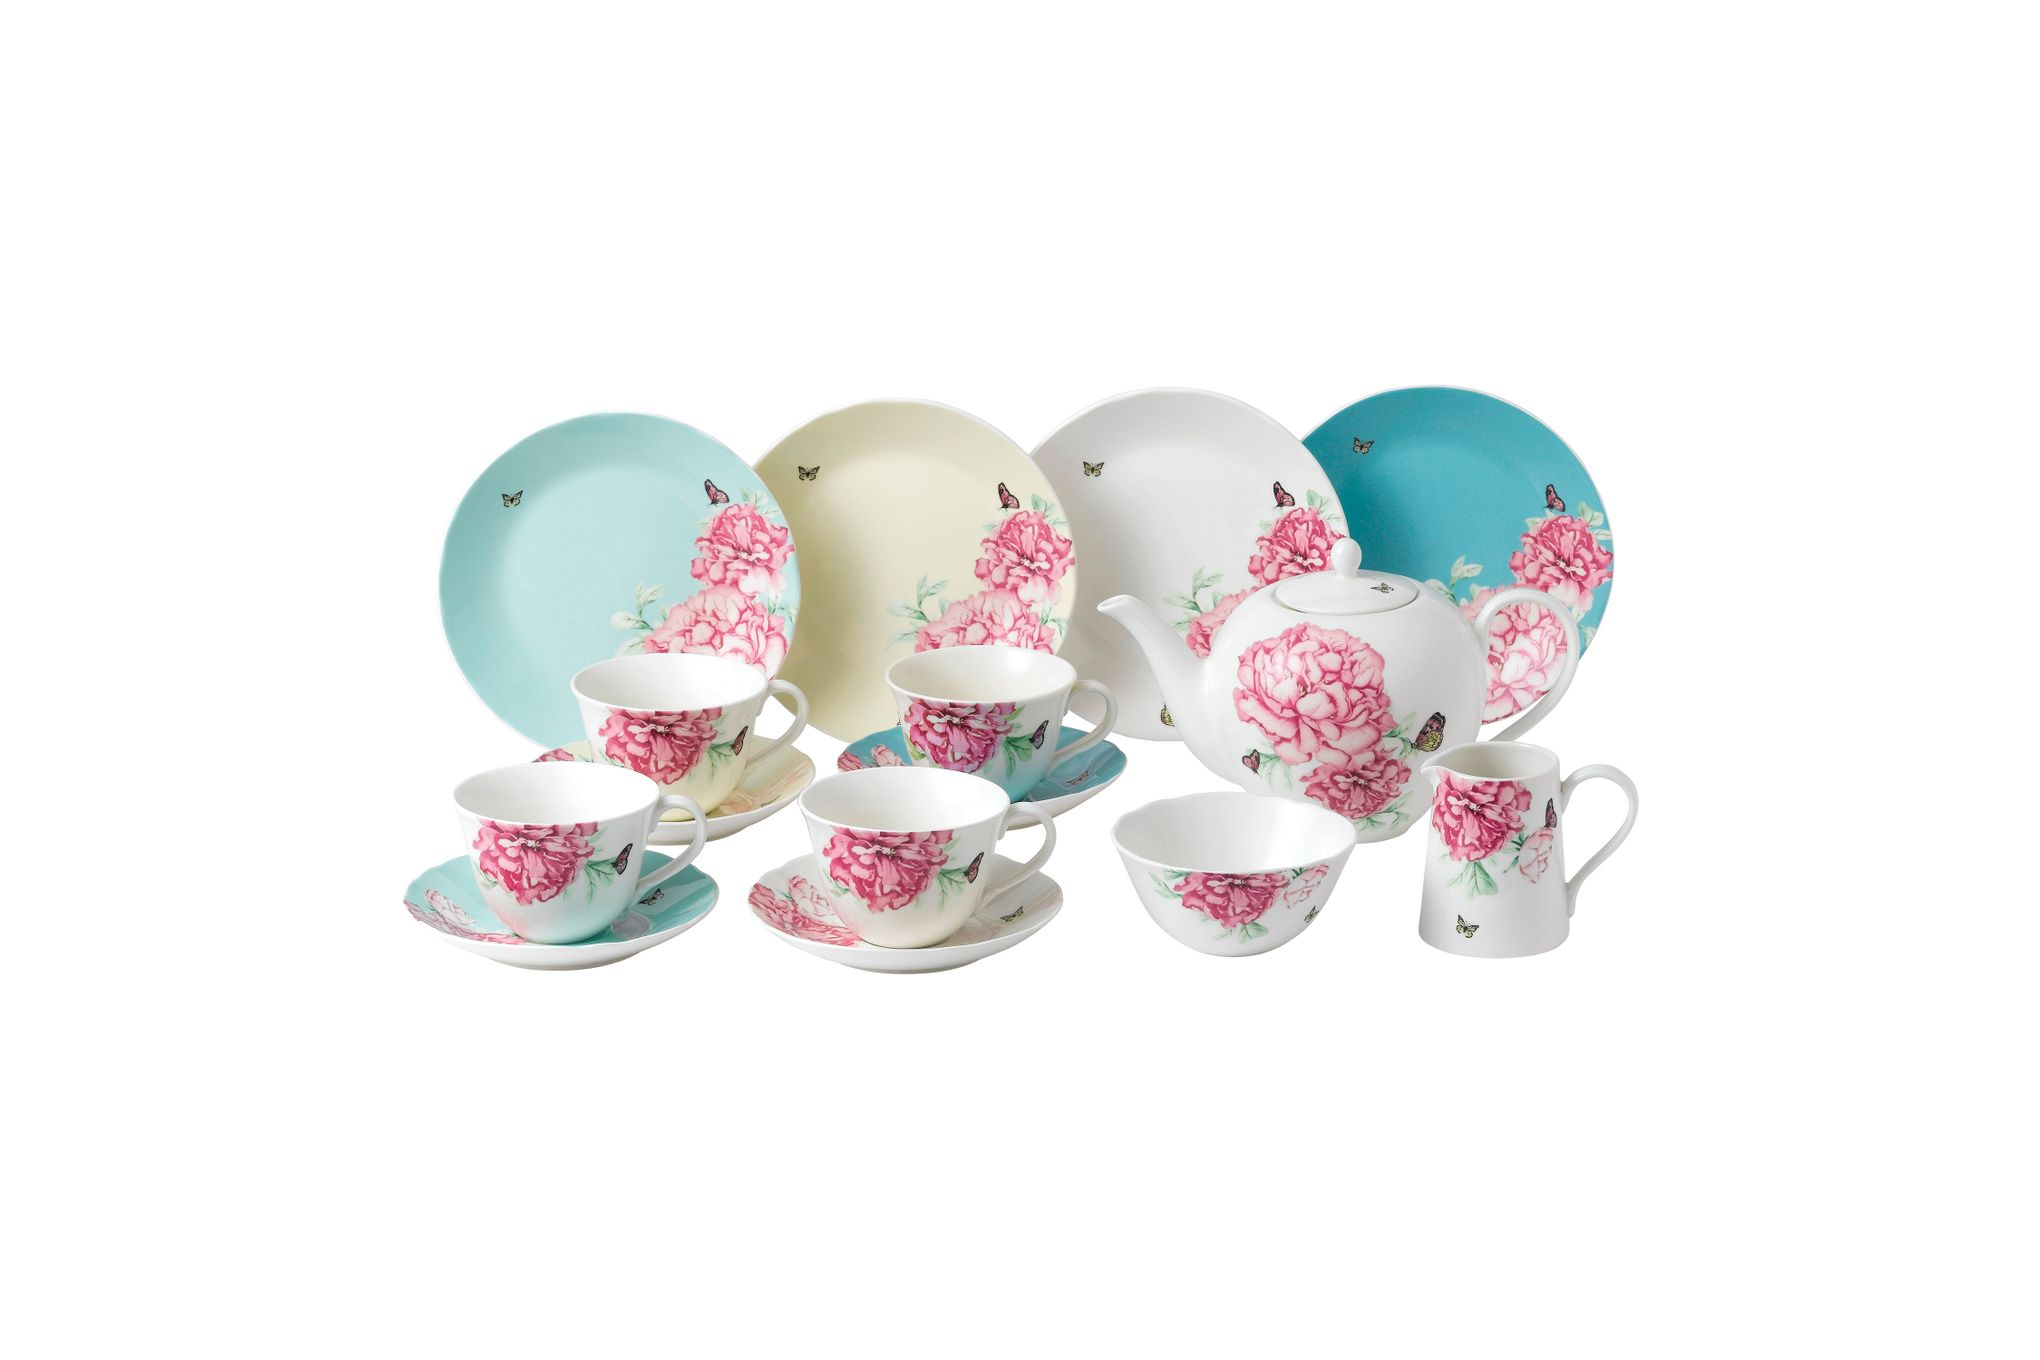 Miranda Kerr for Royal Albert Everyday Friendship 15 Piece Set Mixed Colours - 4 x Plate 20cm, Teacup & Saucers, Teapot, Sugar & Cream thumb 1